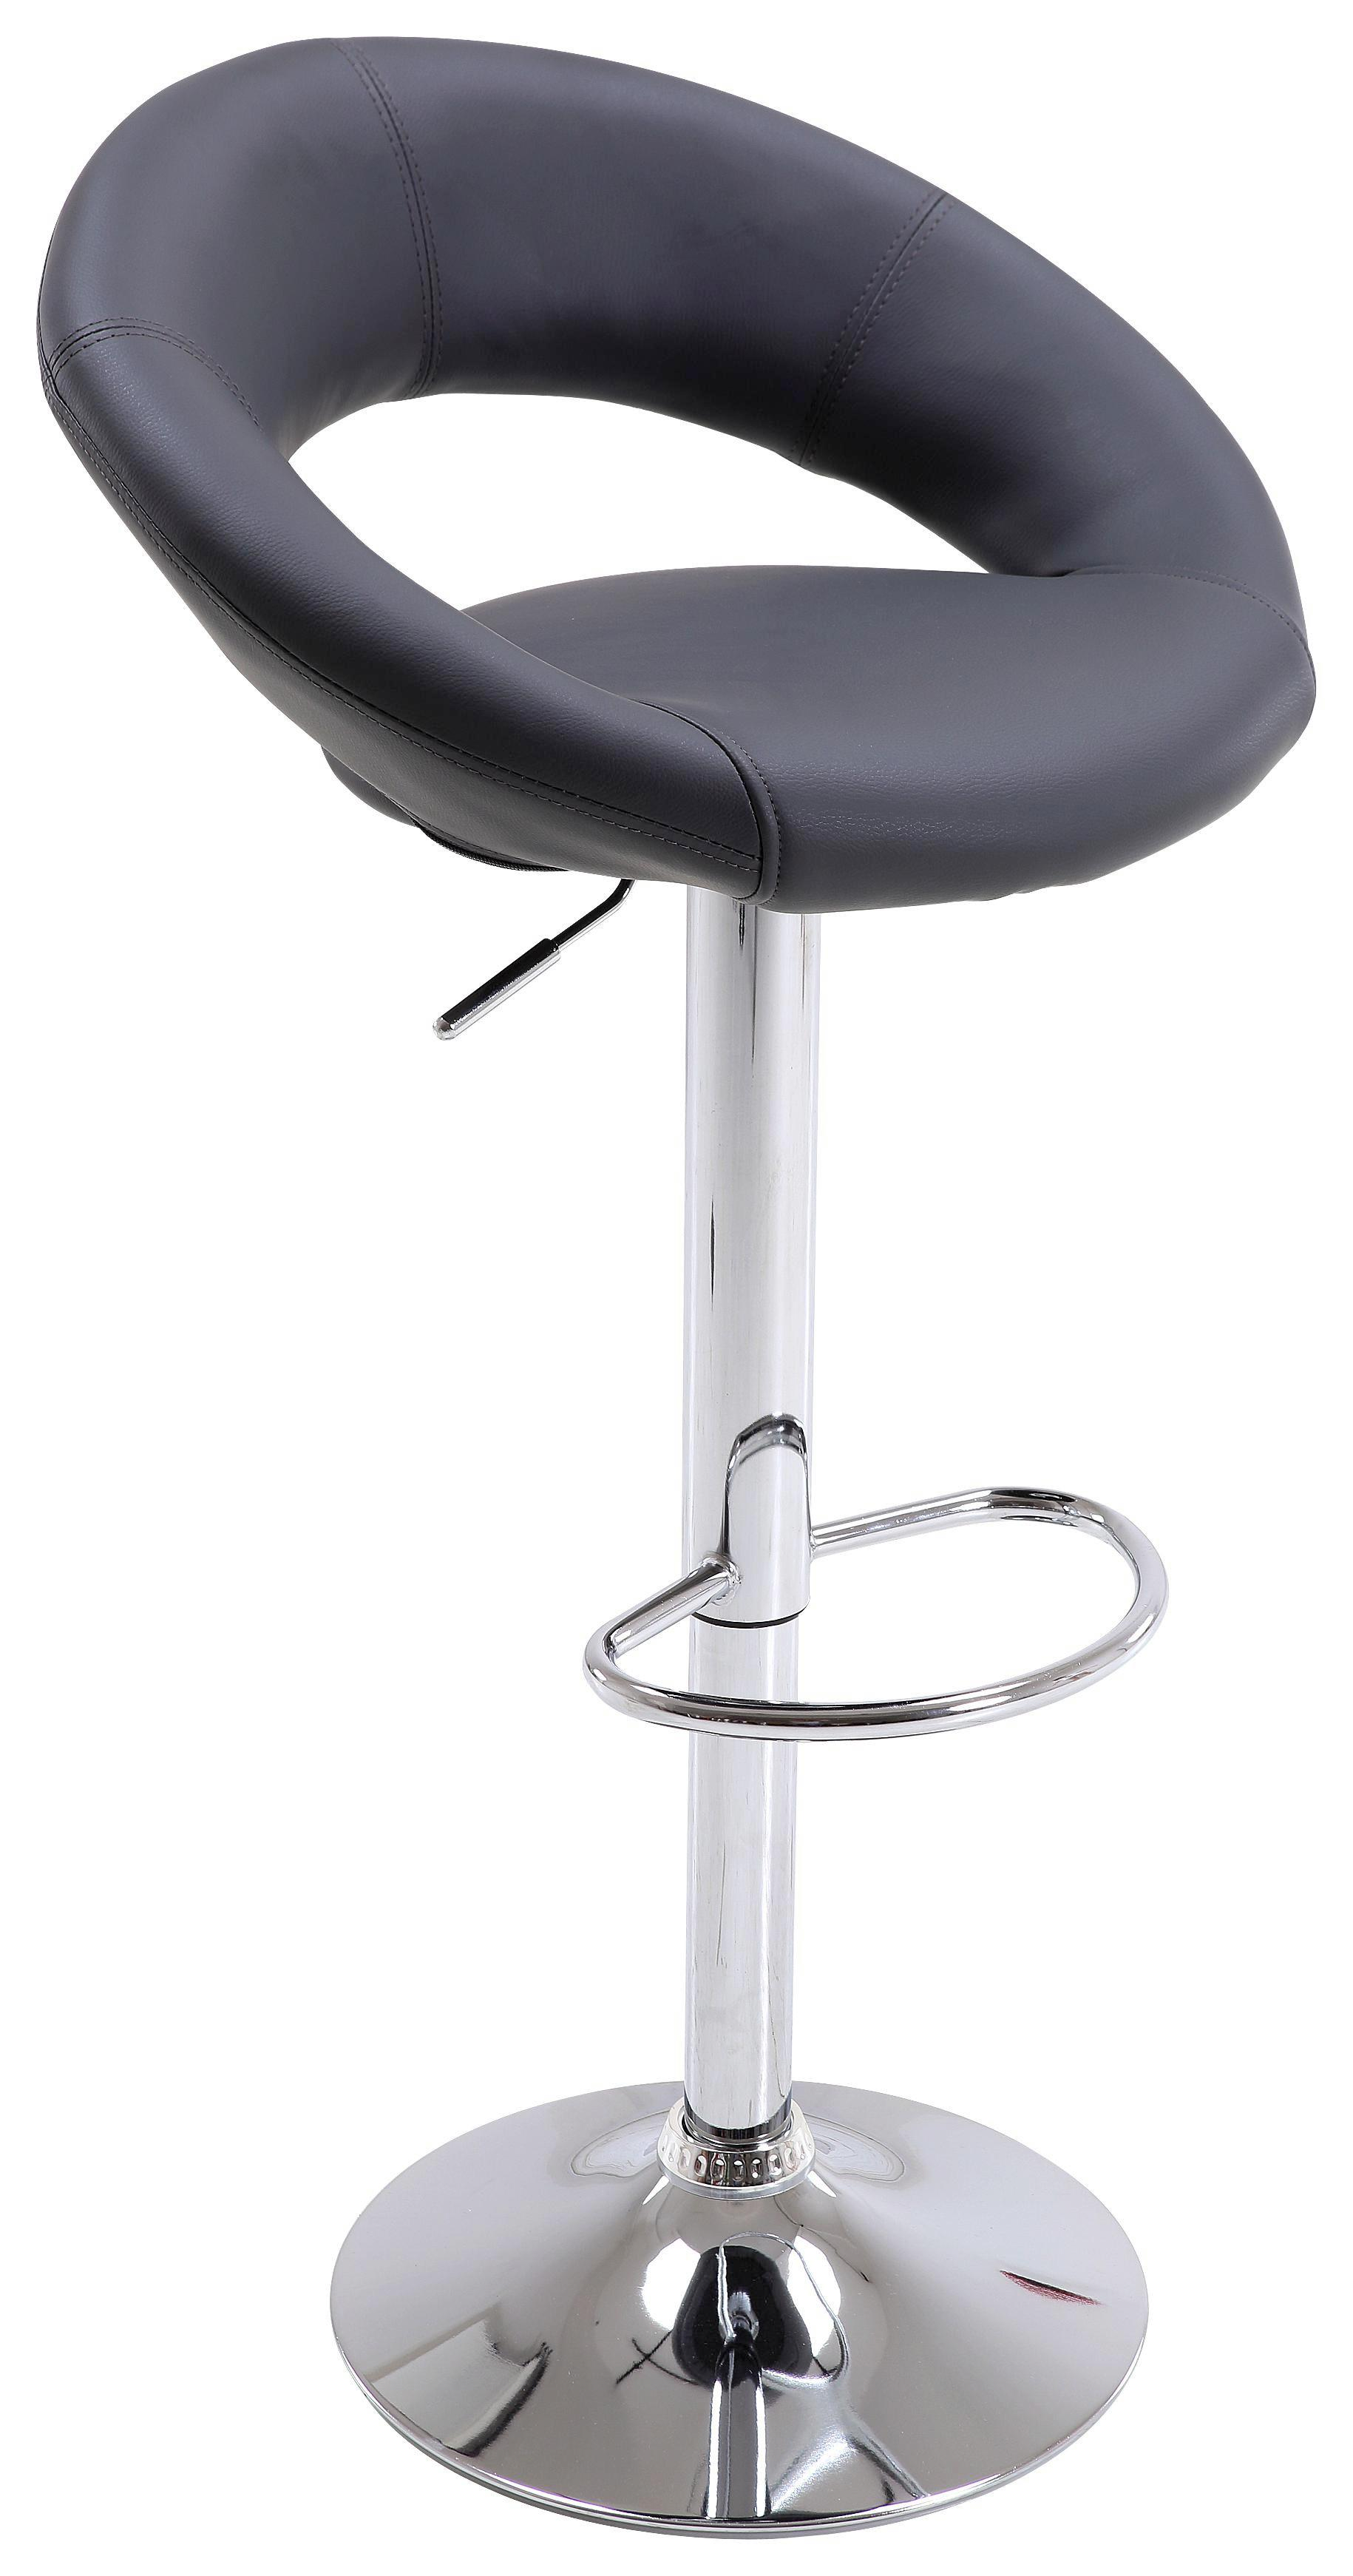 Barstuhl Klappbar Barhocker Grn Pause Bar Stool Barhocker Klein Woud With Barhocker